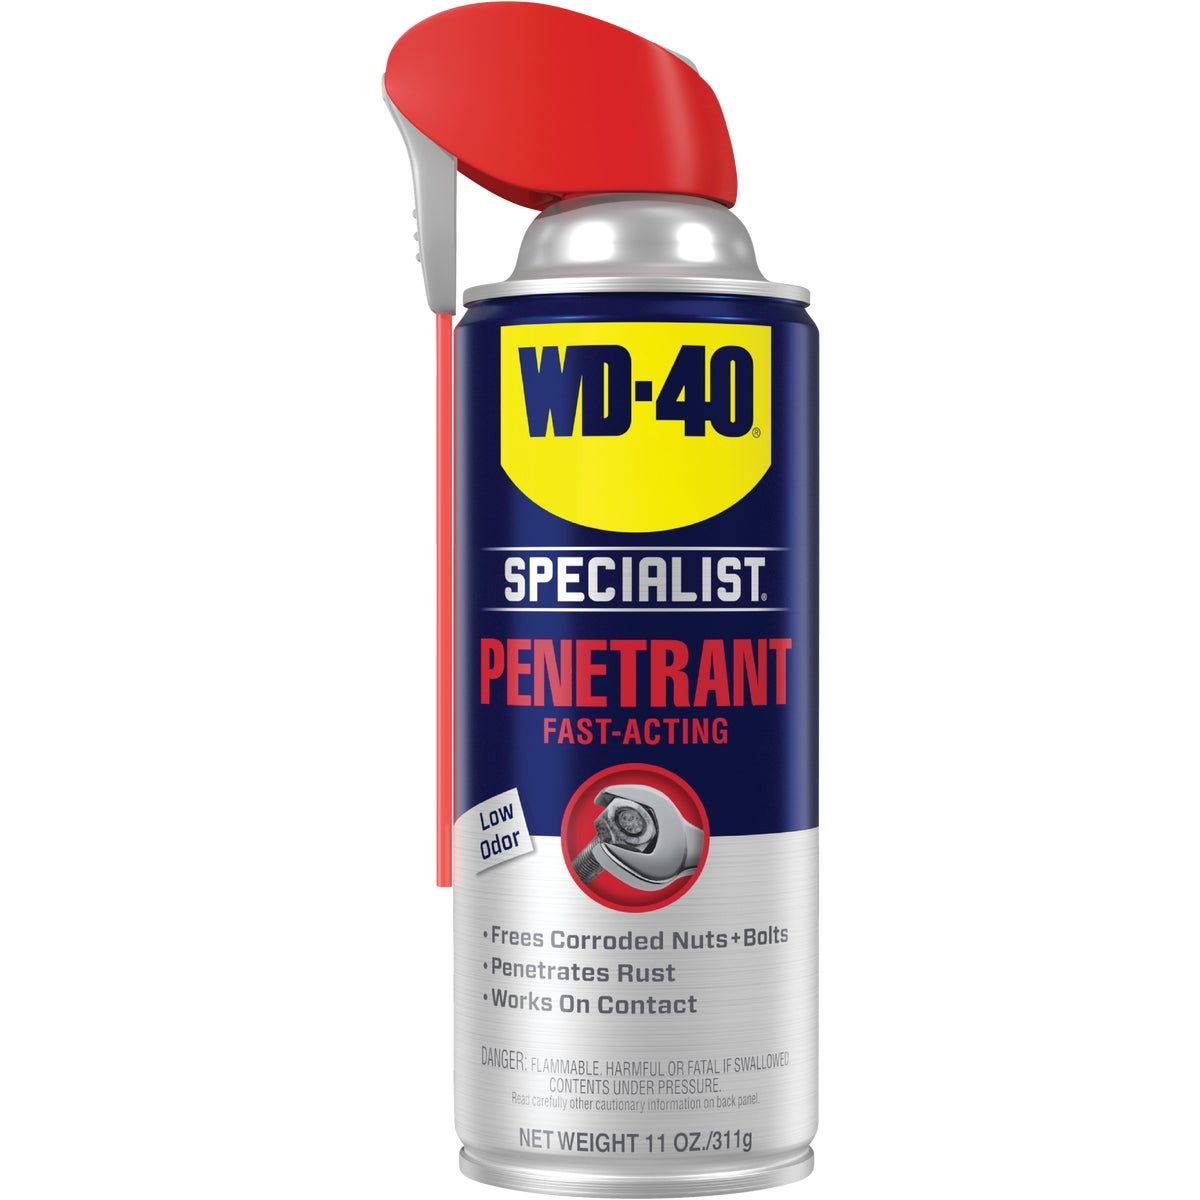 11OZ PENETRANT SPRAY - 300004 by W D 40 Company